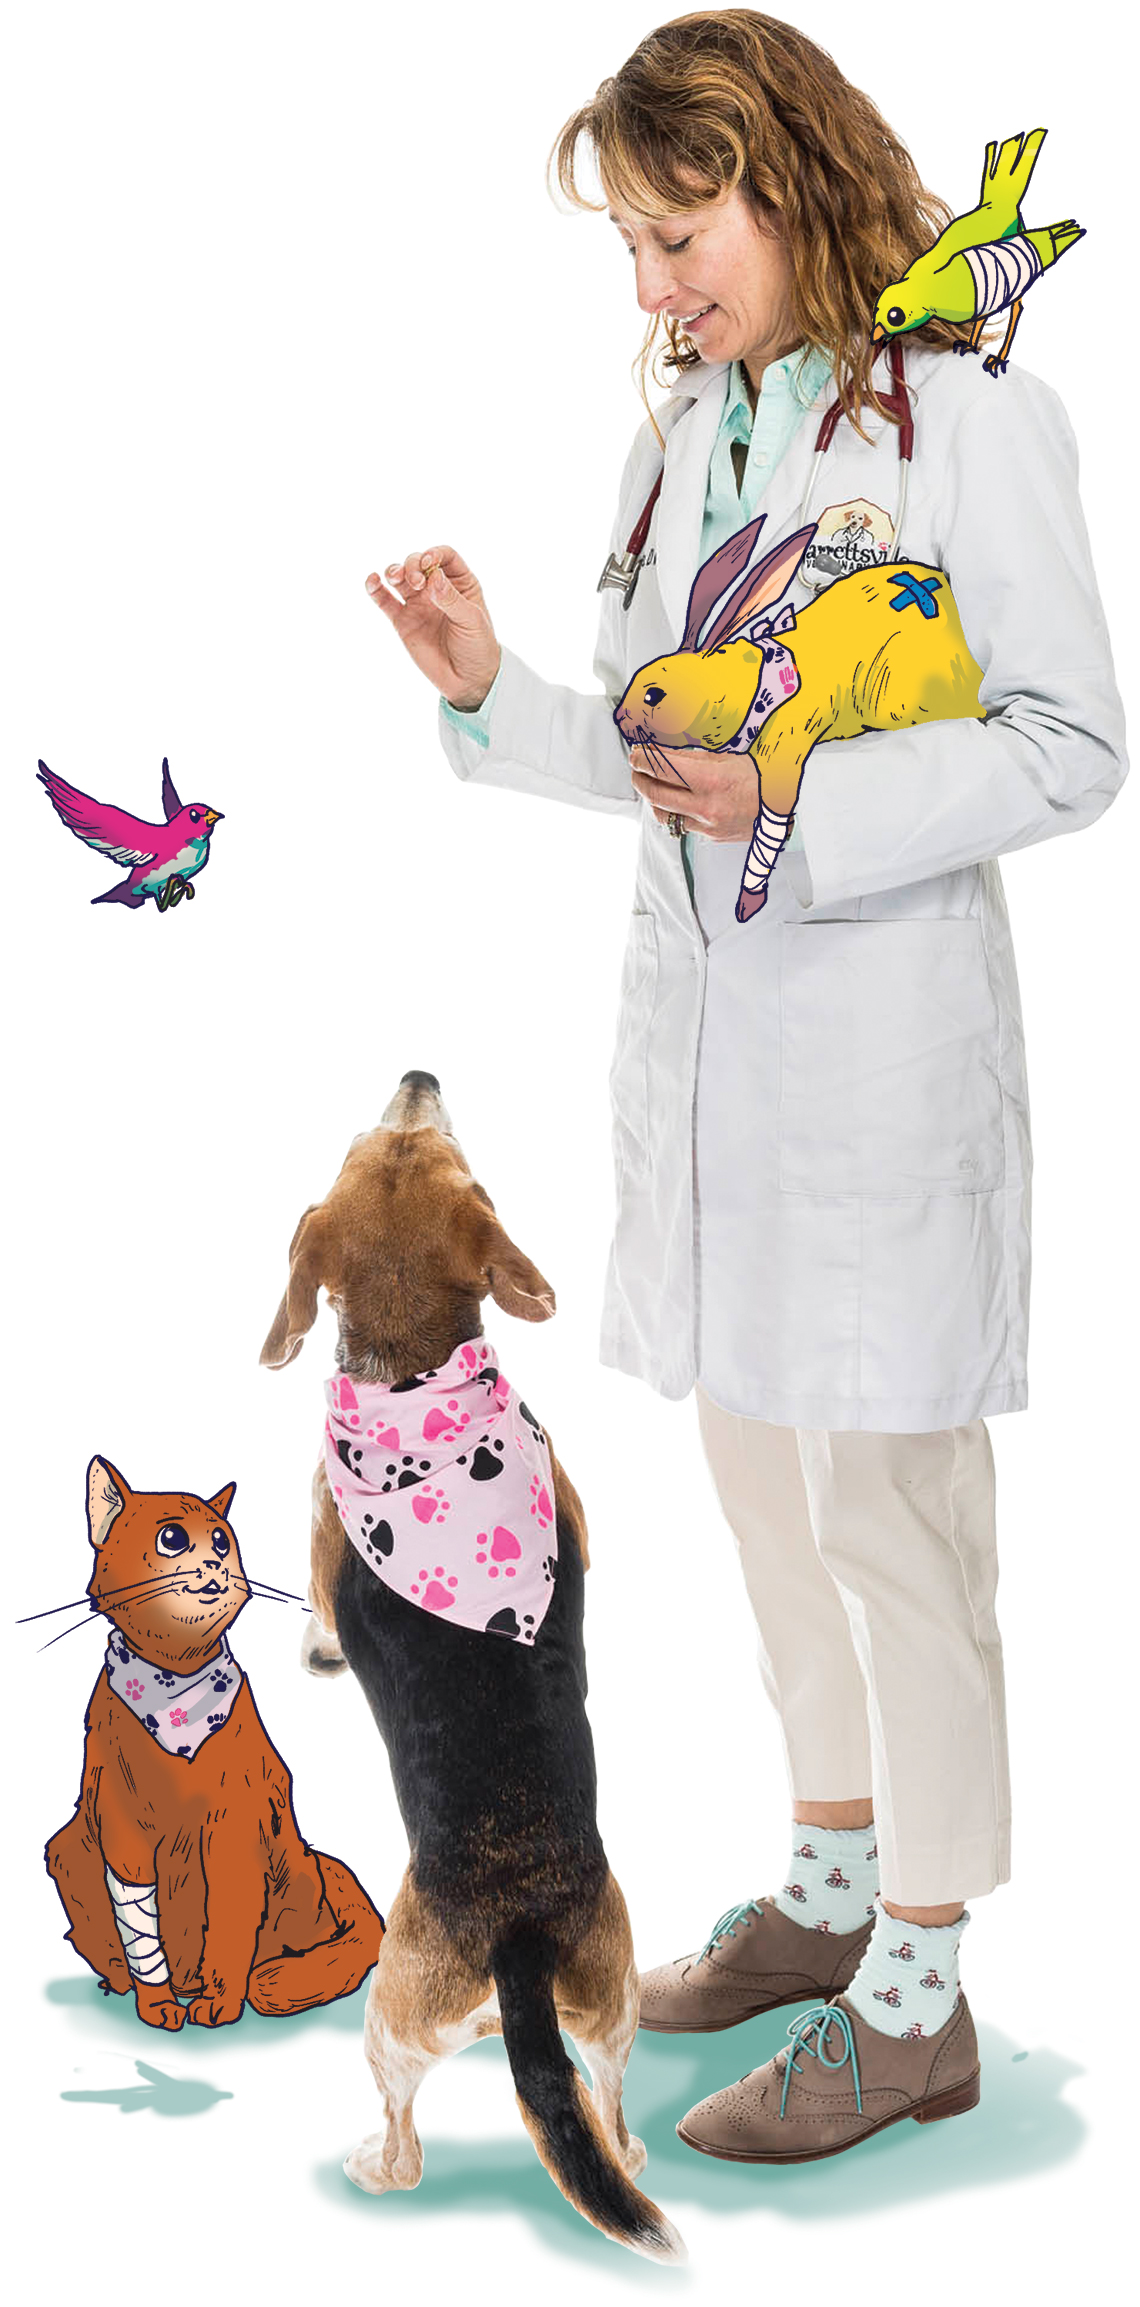 vet cares for pets